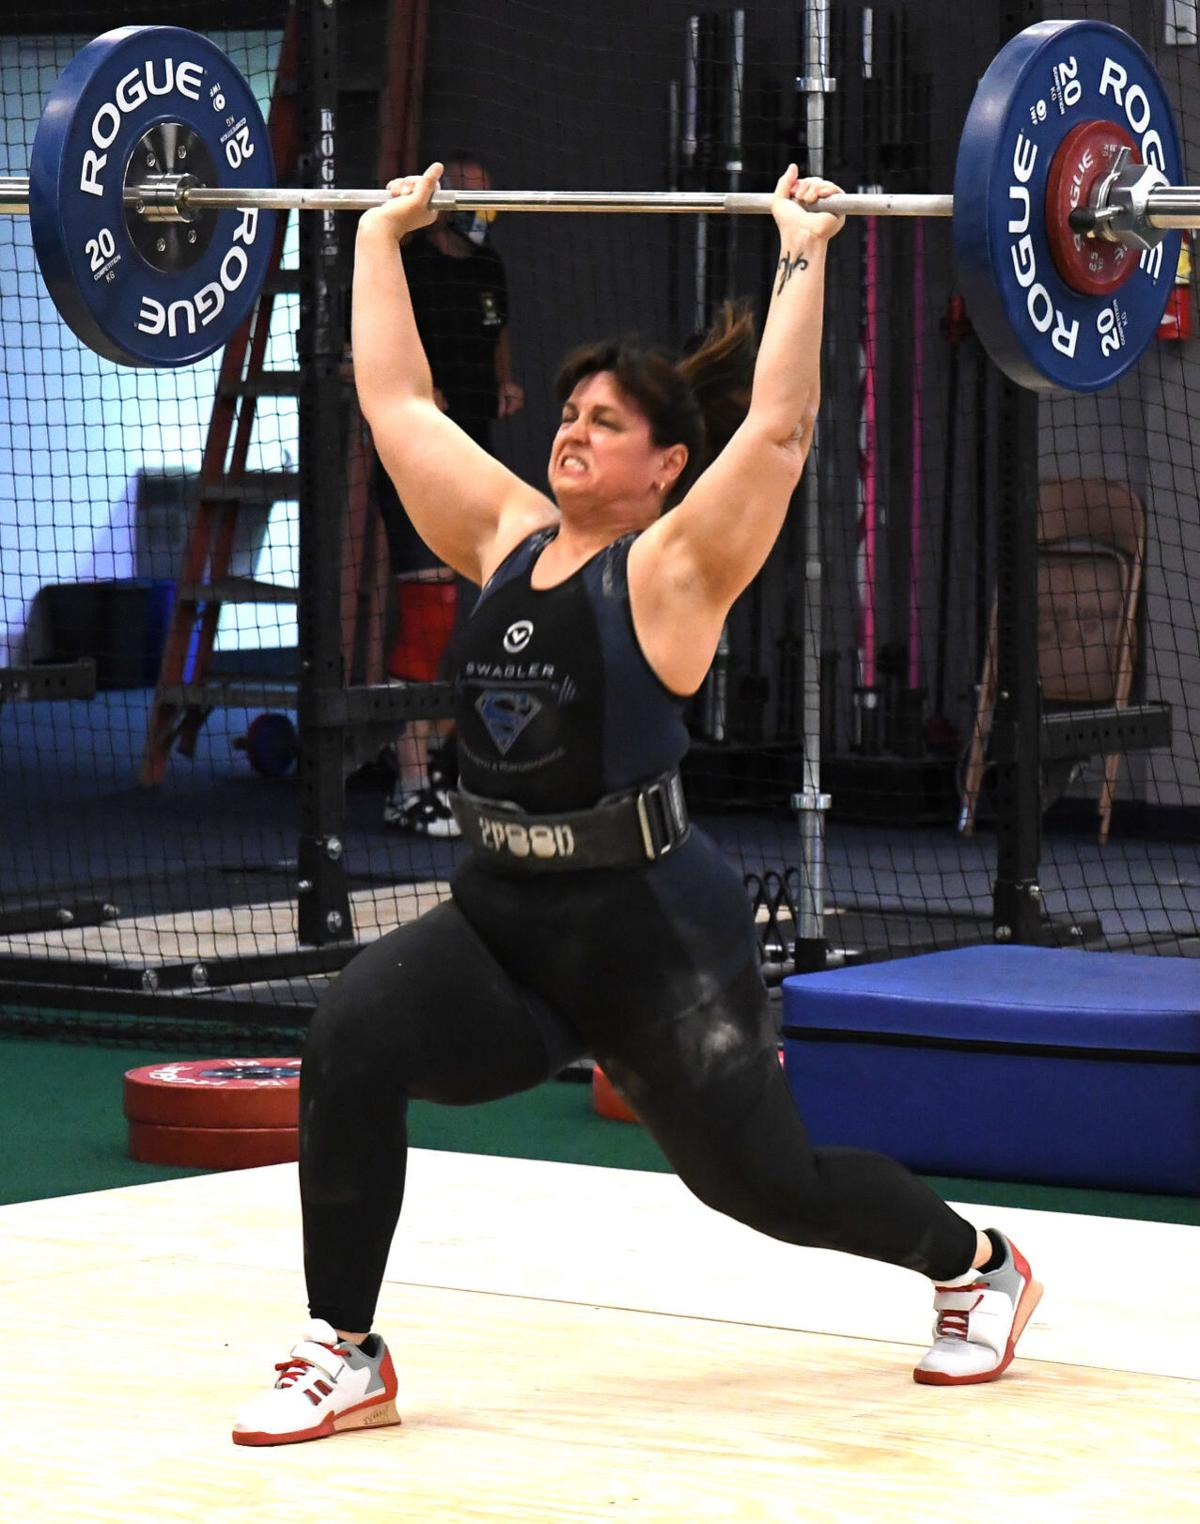 Weightlifting - 1